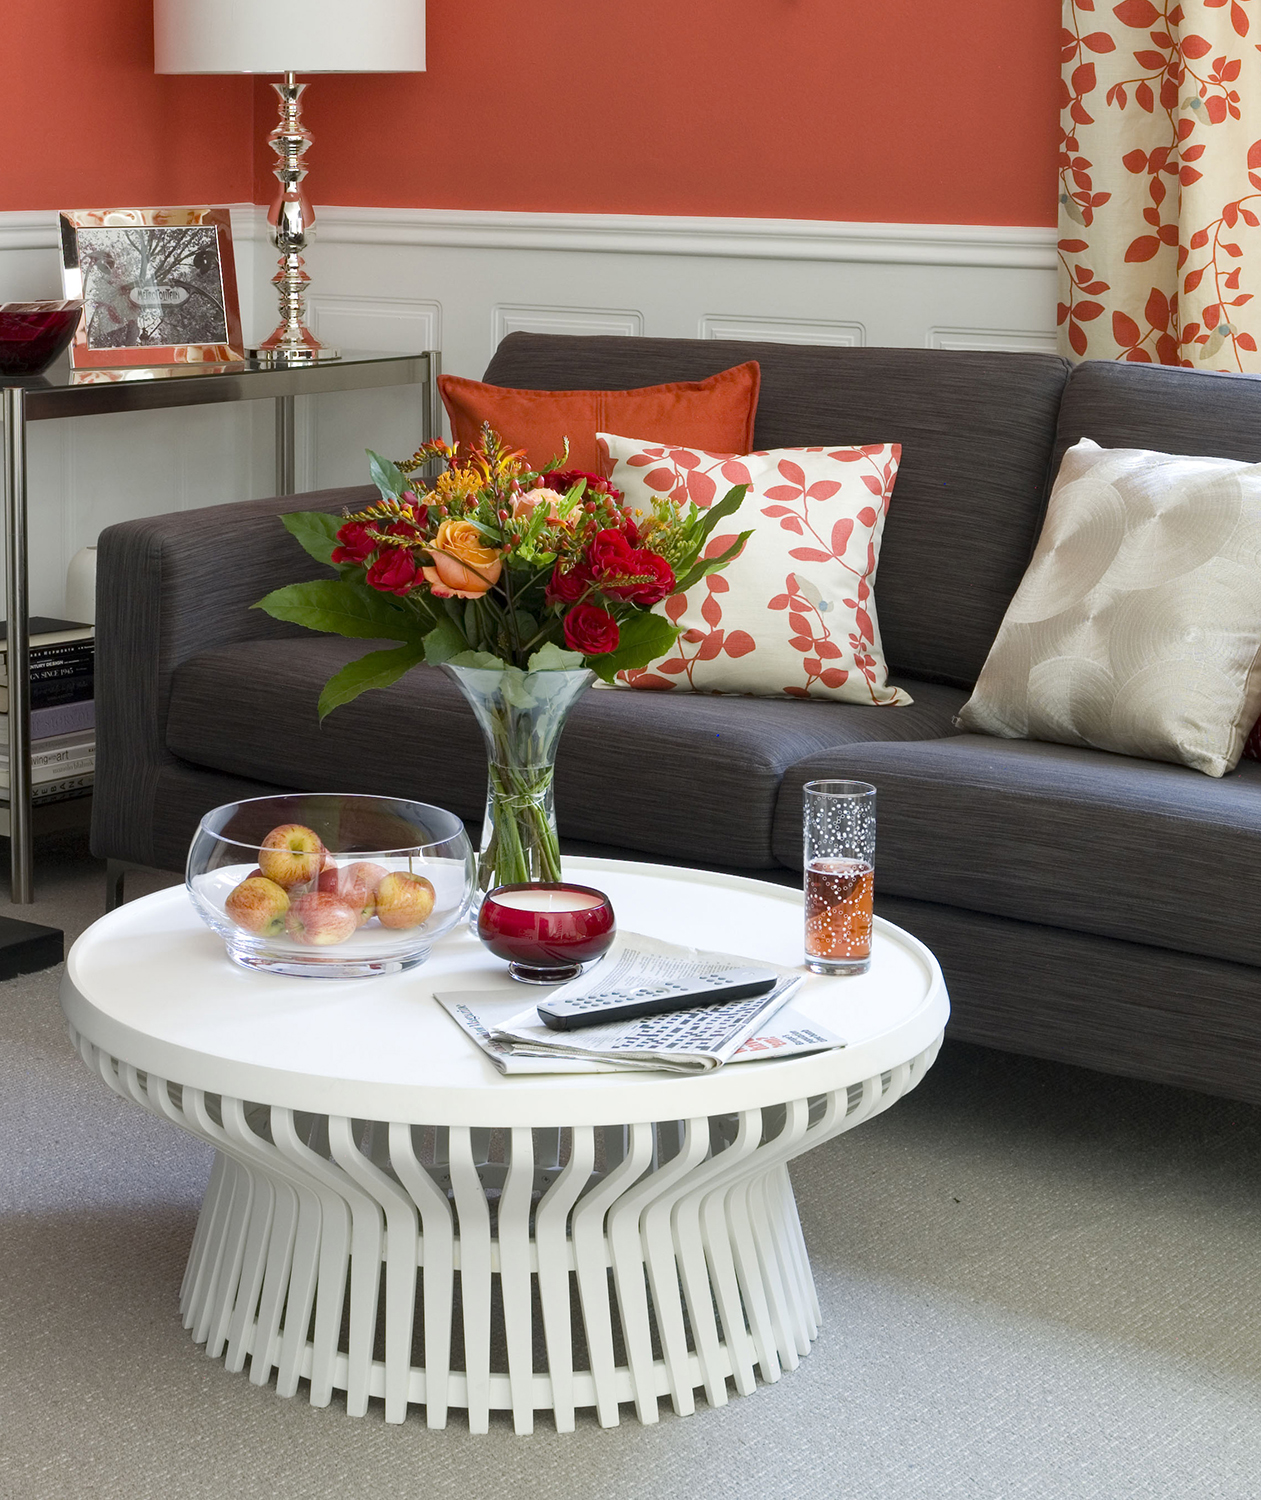 Sofa details with throw pillows in red room